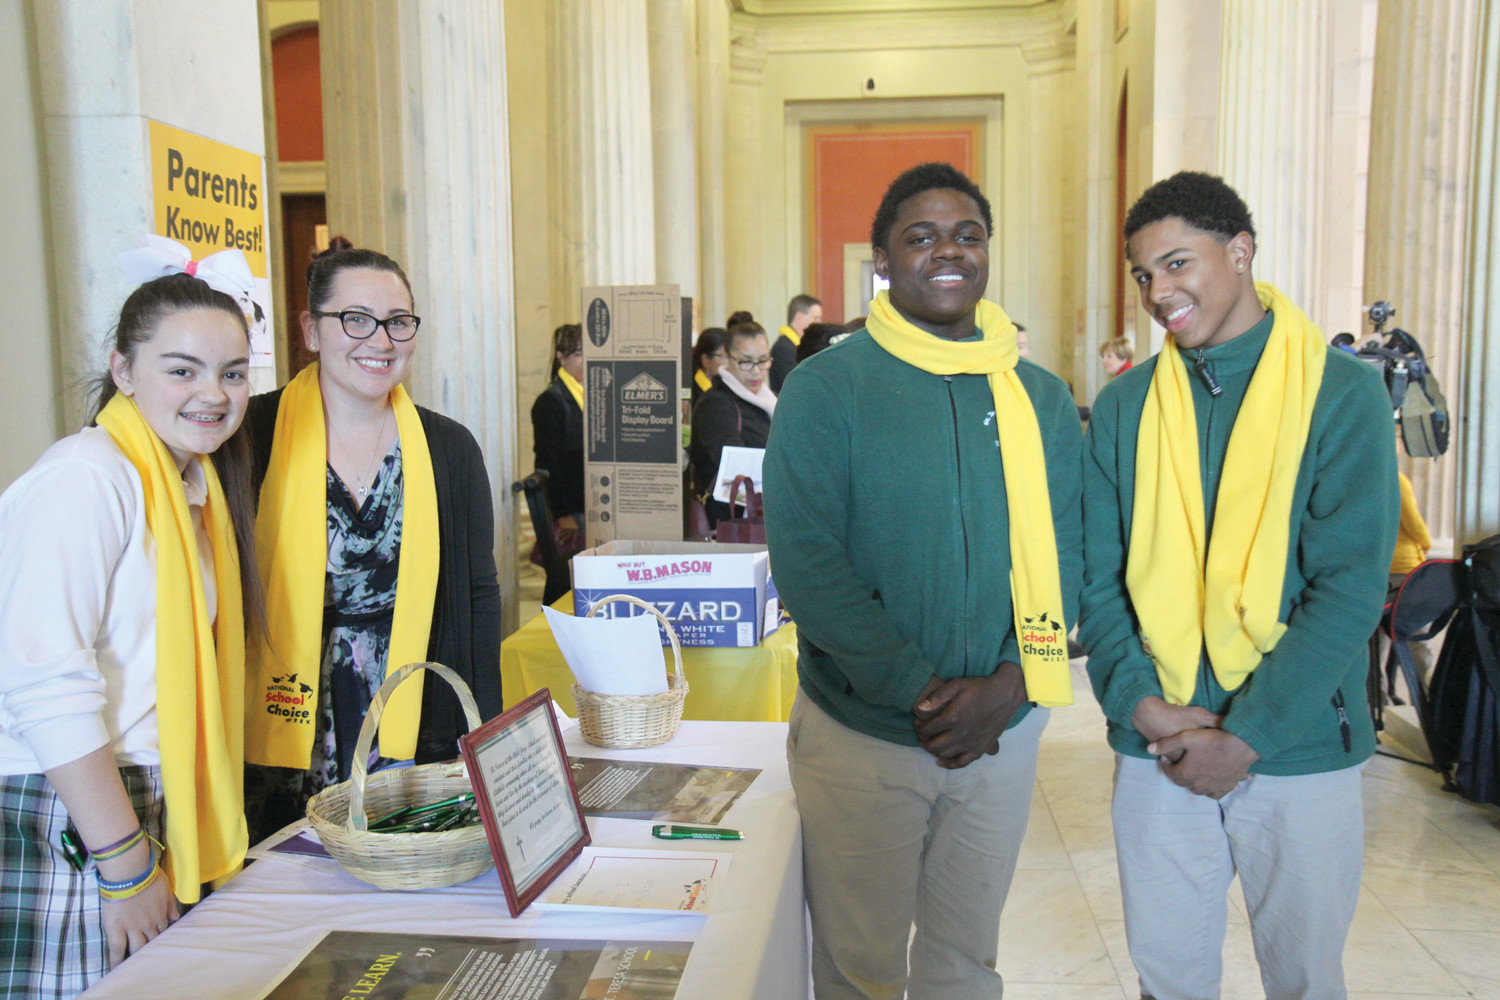 Students from St. Teresa School, Pawtucket, stand with their principal, Allison Amodie, to represent their school at the annual School Choice Rally at the Rhode Island State House. From left to right are sixth-grader Hannah Guevremont, Principal Amodie and eighth graders Elijah Osei and Henique Ross.